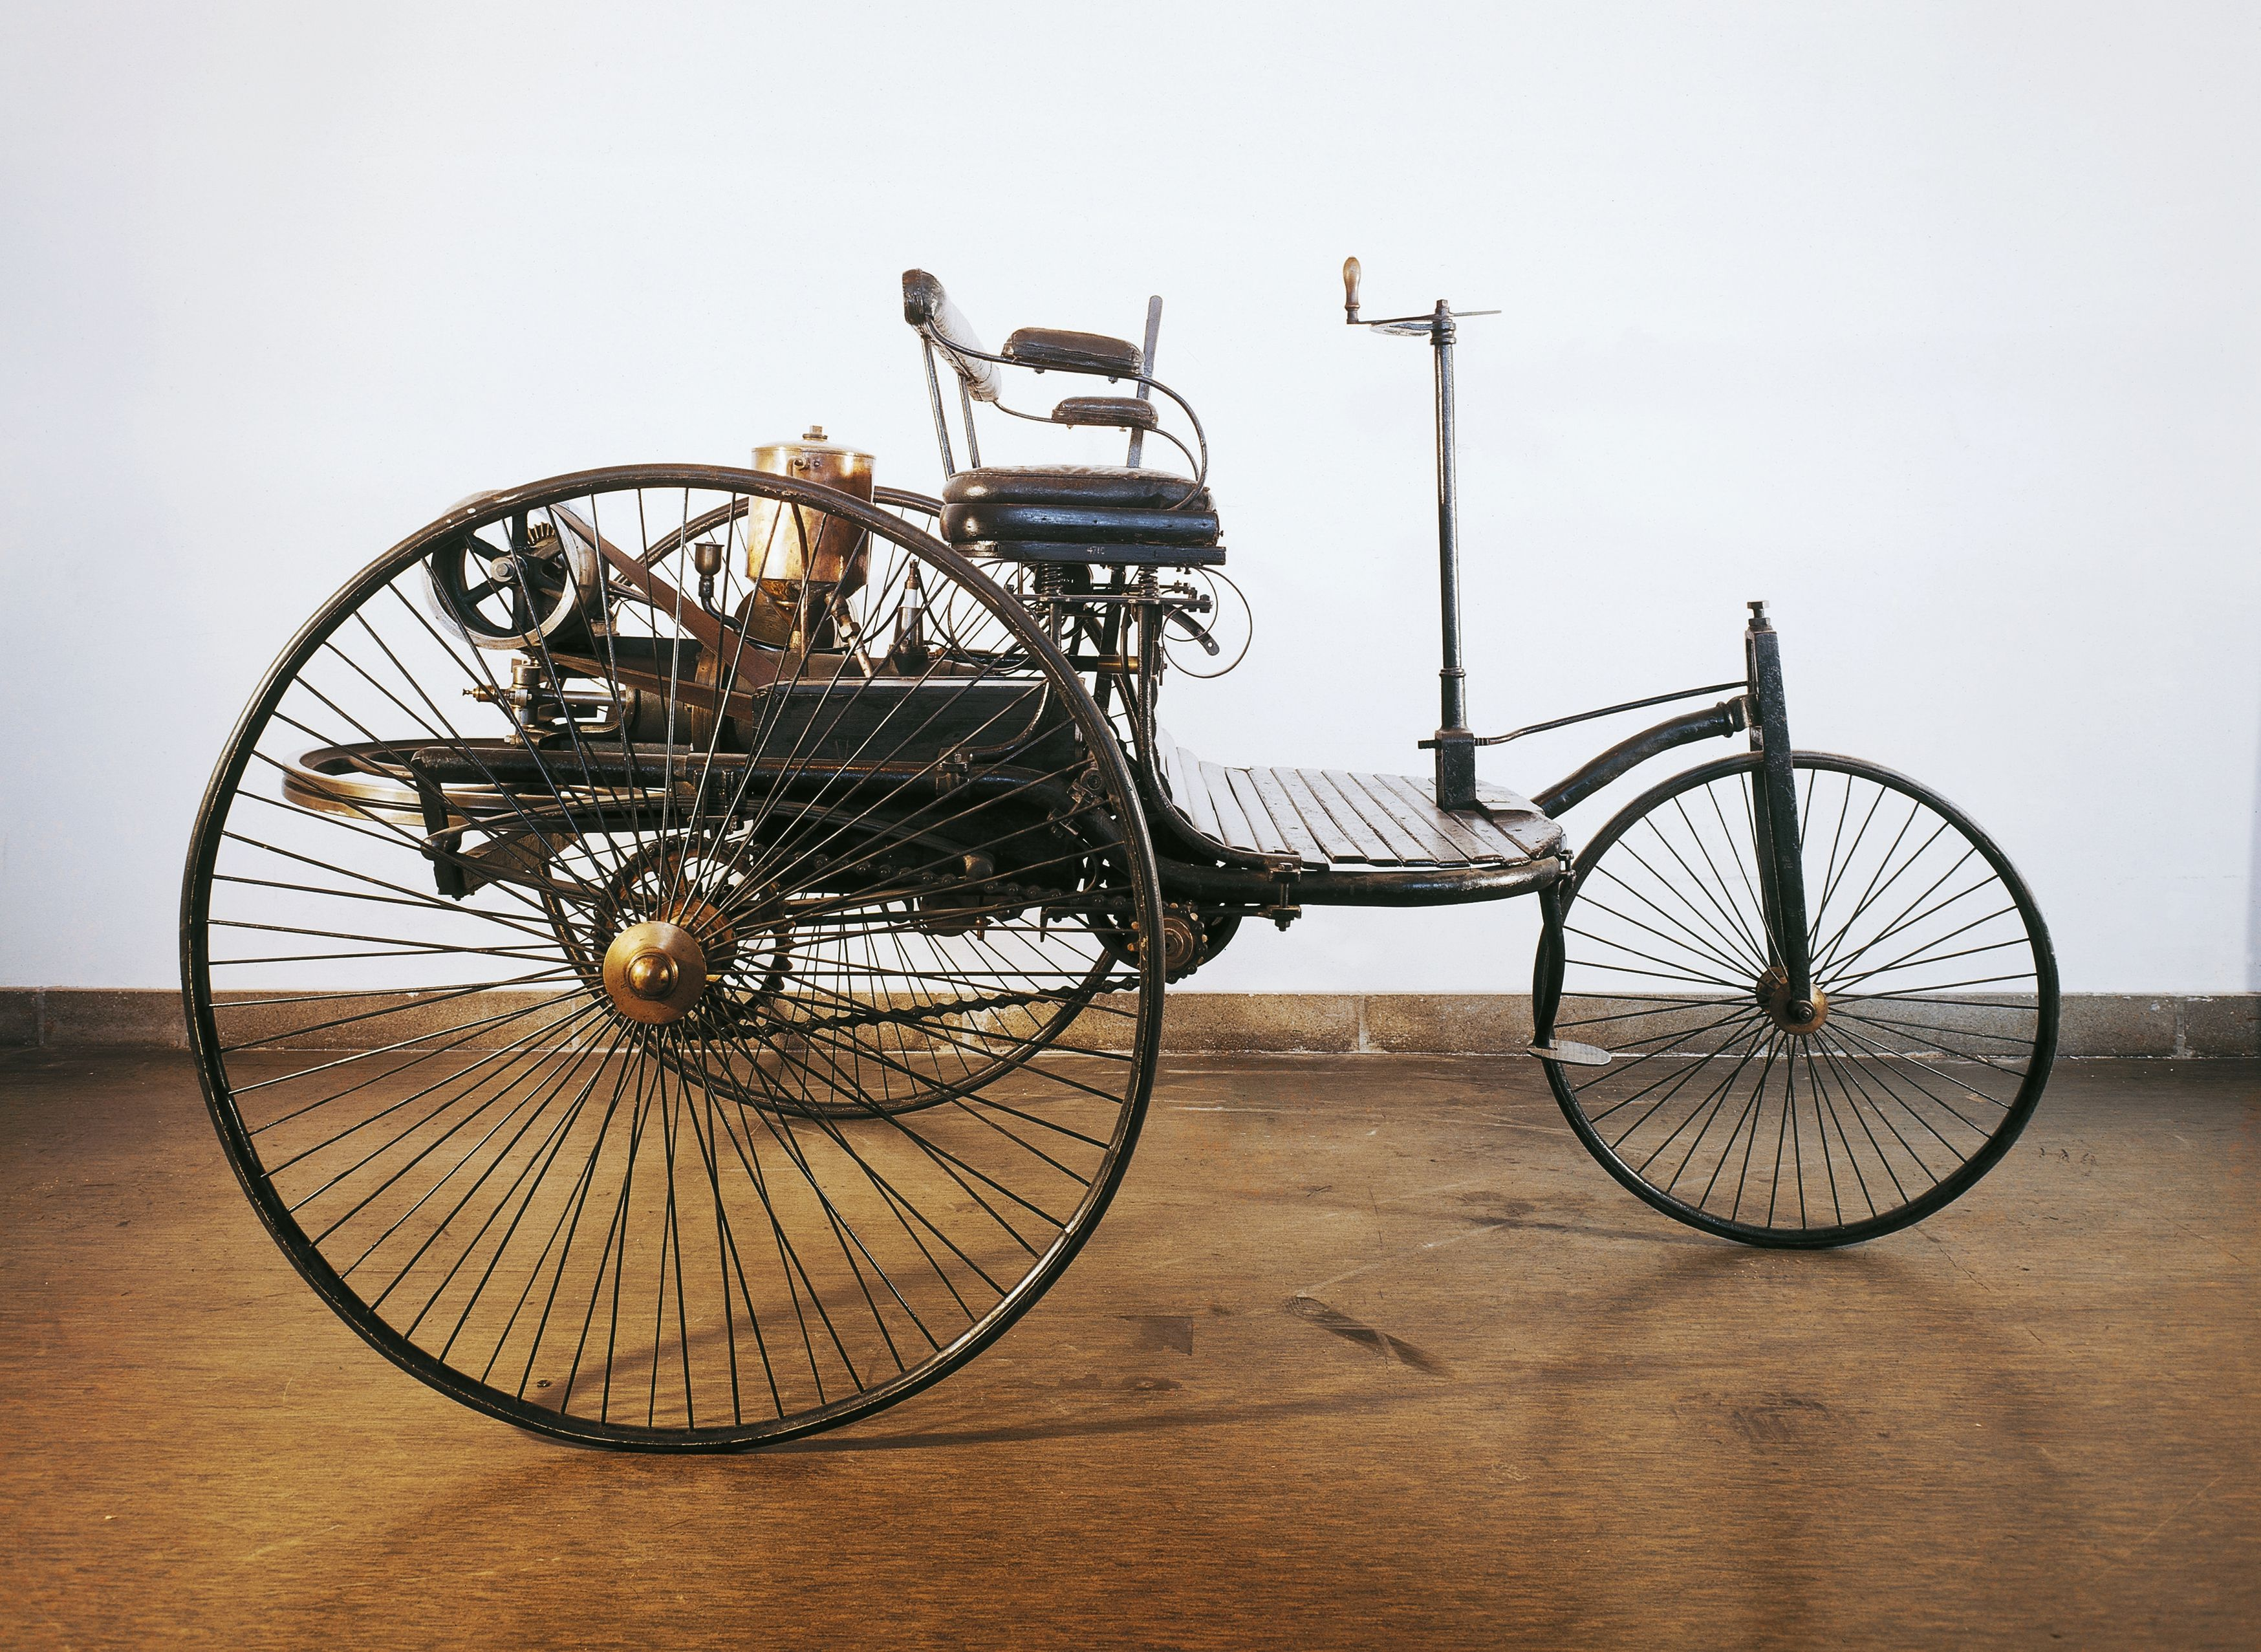 Karl Benz's First Automobile